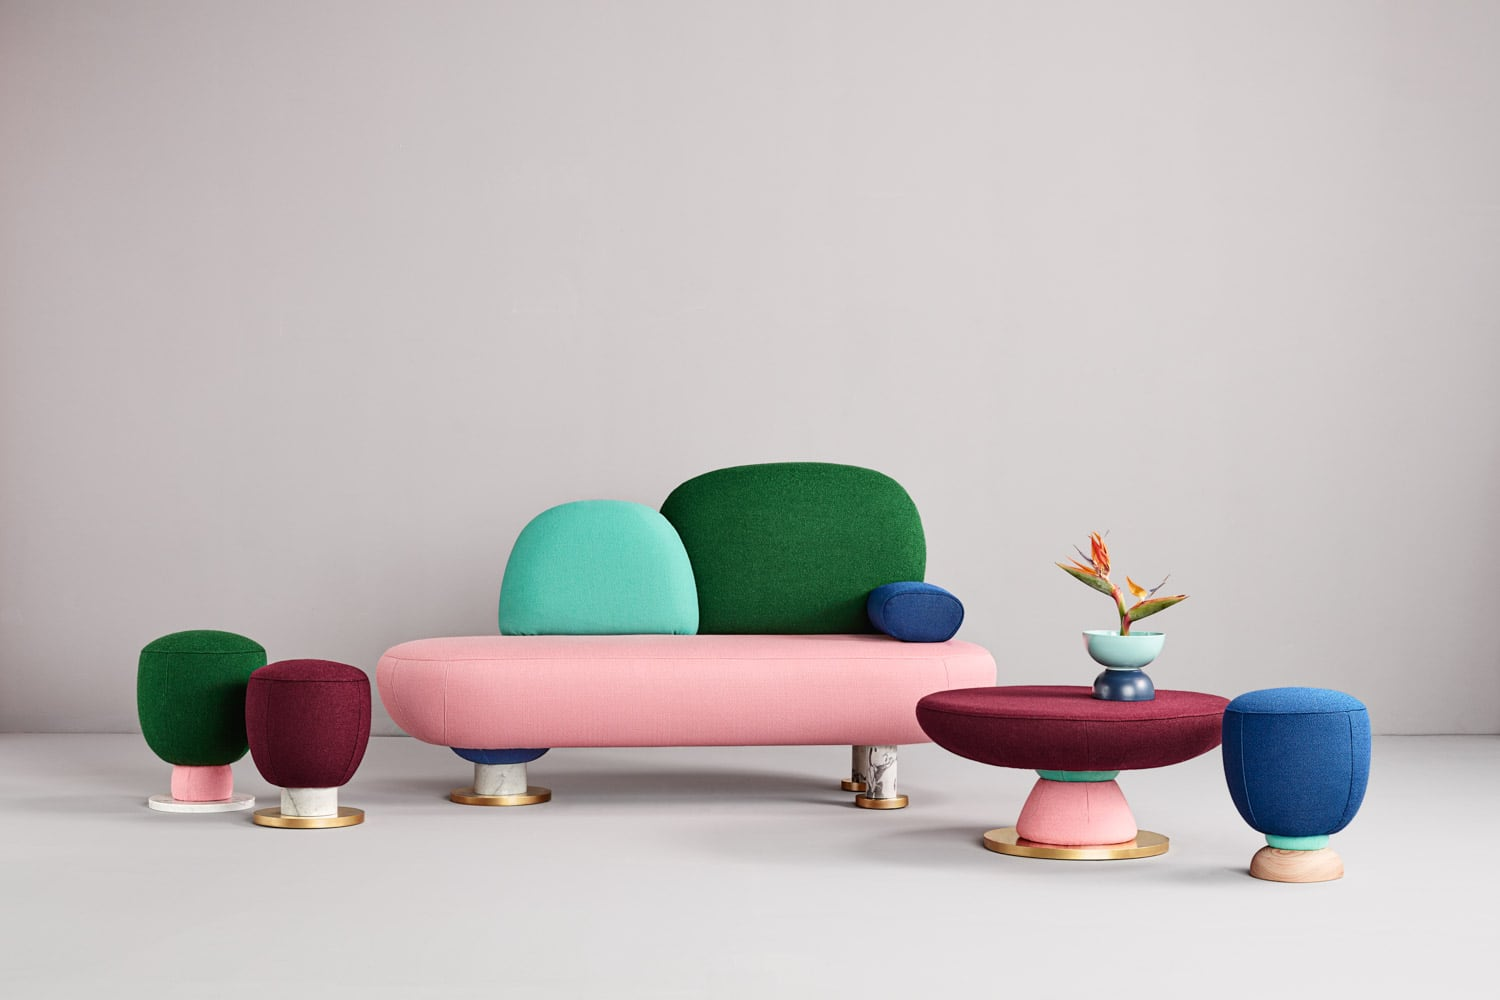 toadstool-table-masquespacio-missana-hospitality-design